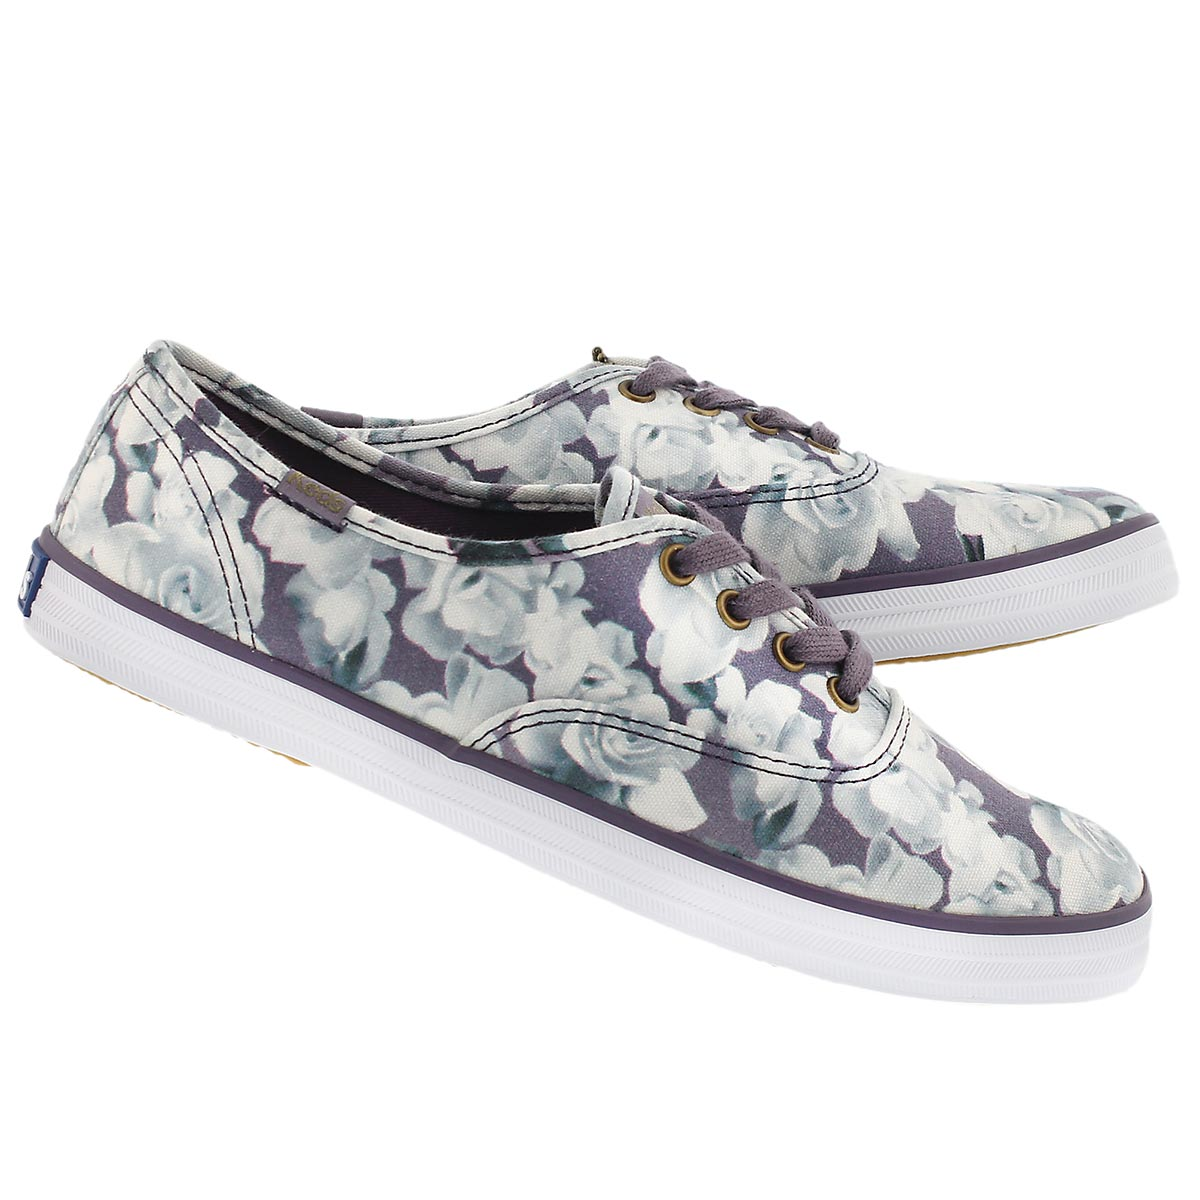 Lds Frost Floral purple printed sneaker